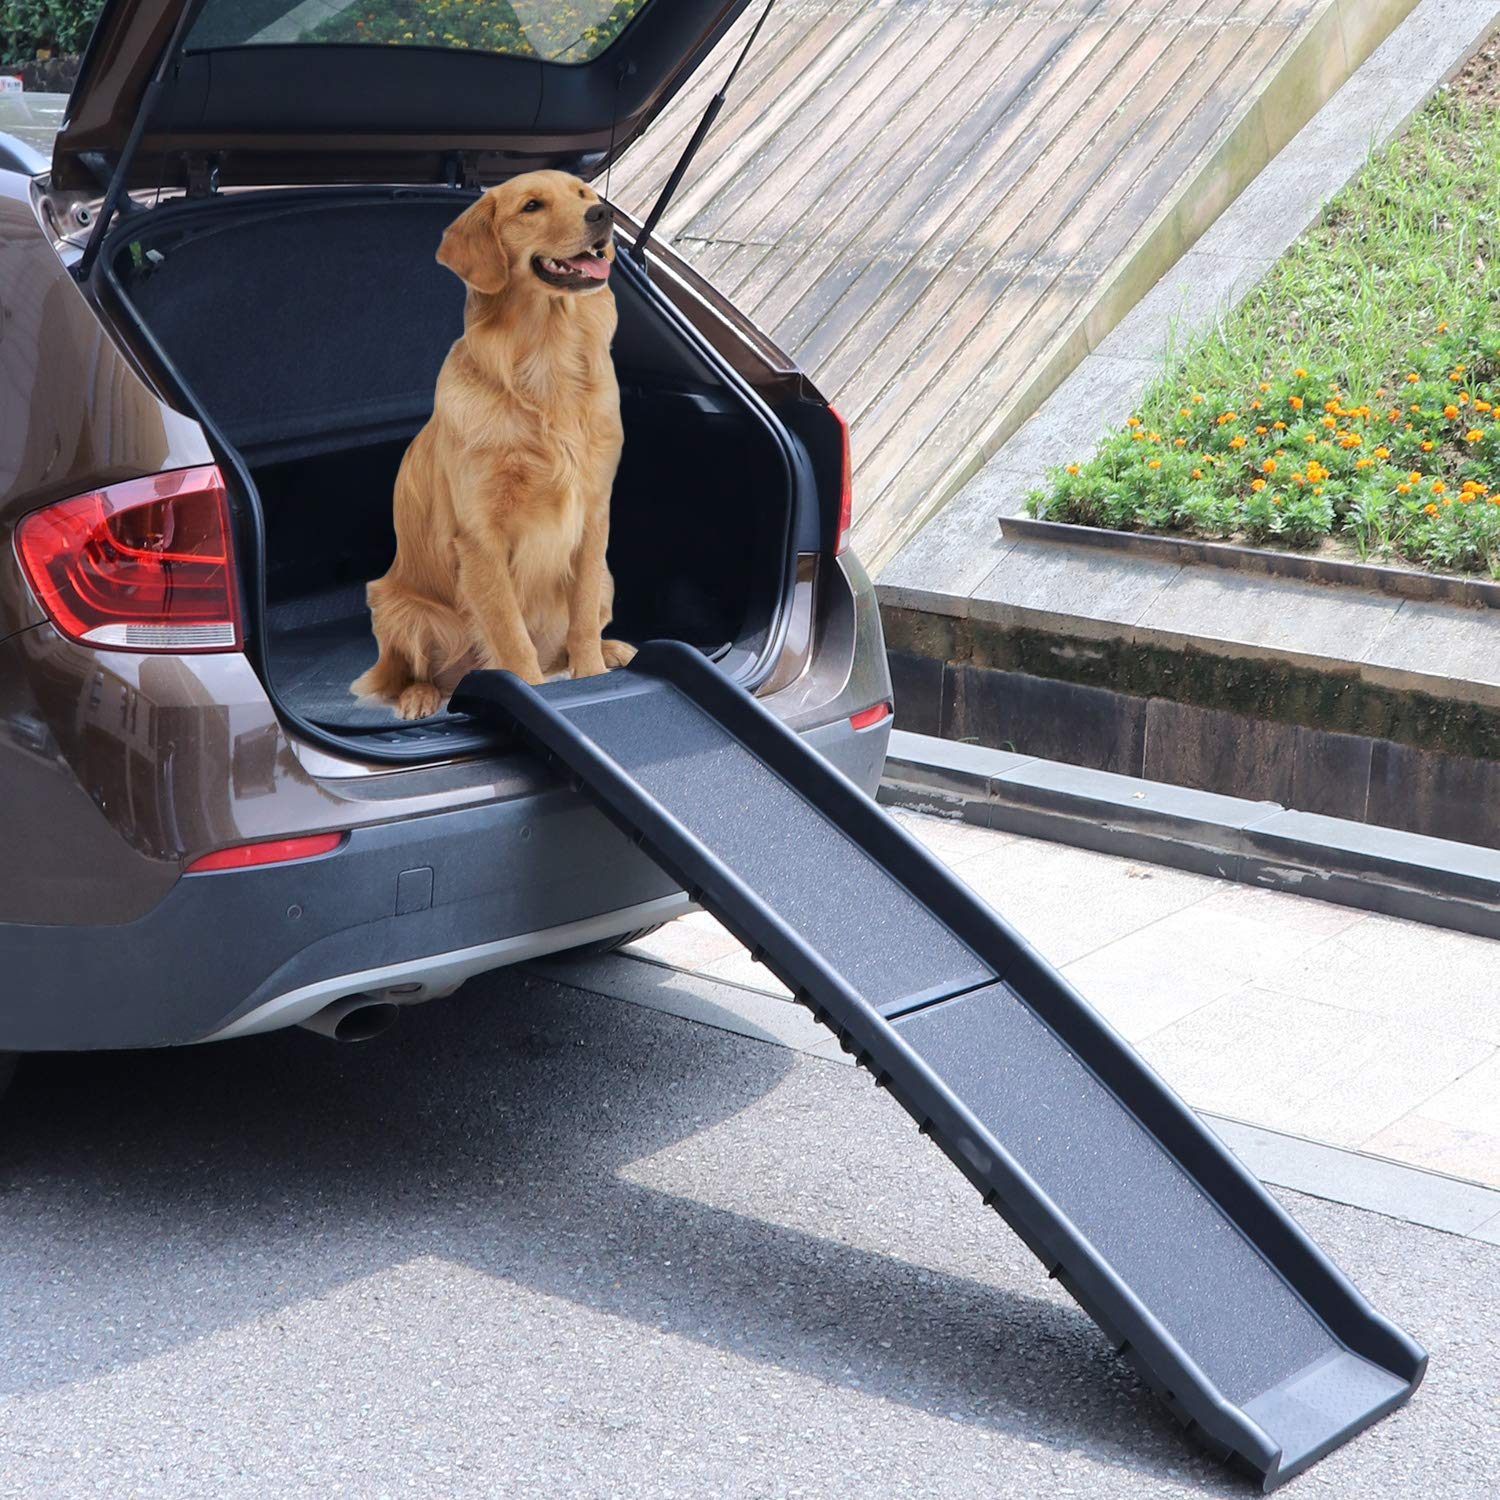 Atoz Create Bi-Fold Pet Ramp for Large Dog Collapsible Portable Dog and Cat Ramp Support Up to 200lbs, 62 in, Great for Cars, Vans, SUVs, and Trucks(Black) by Atoz Create